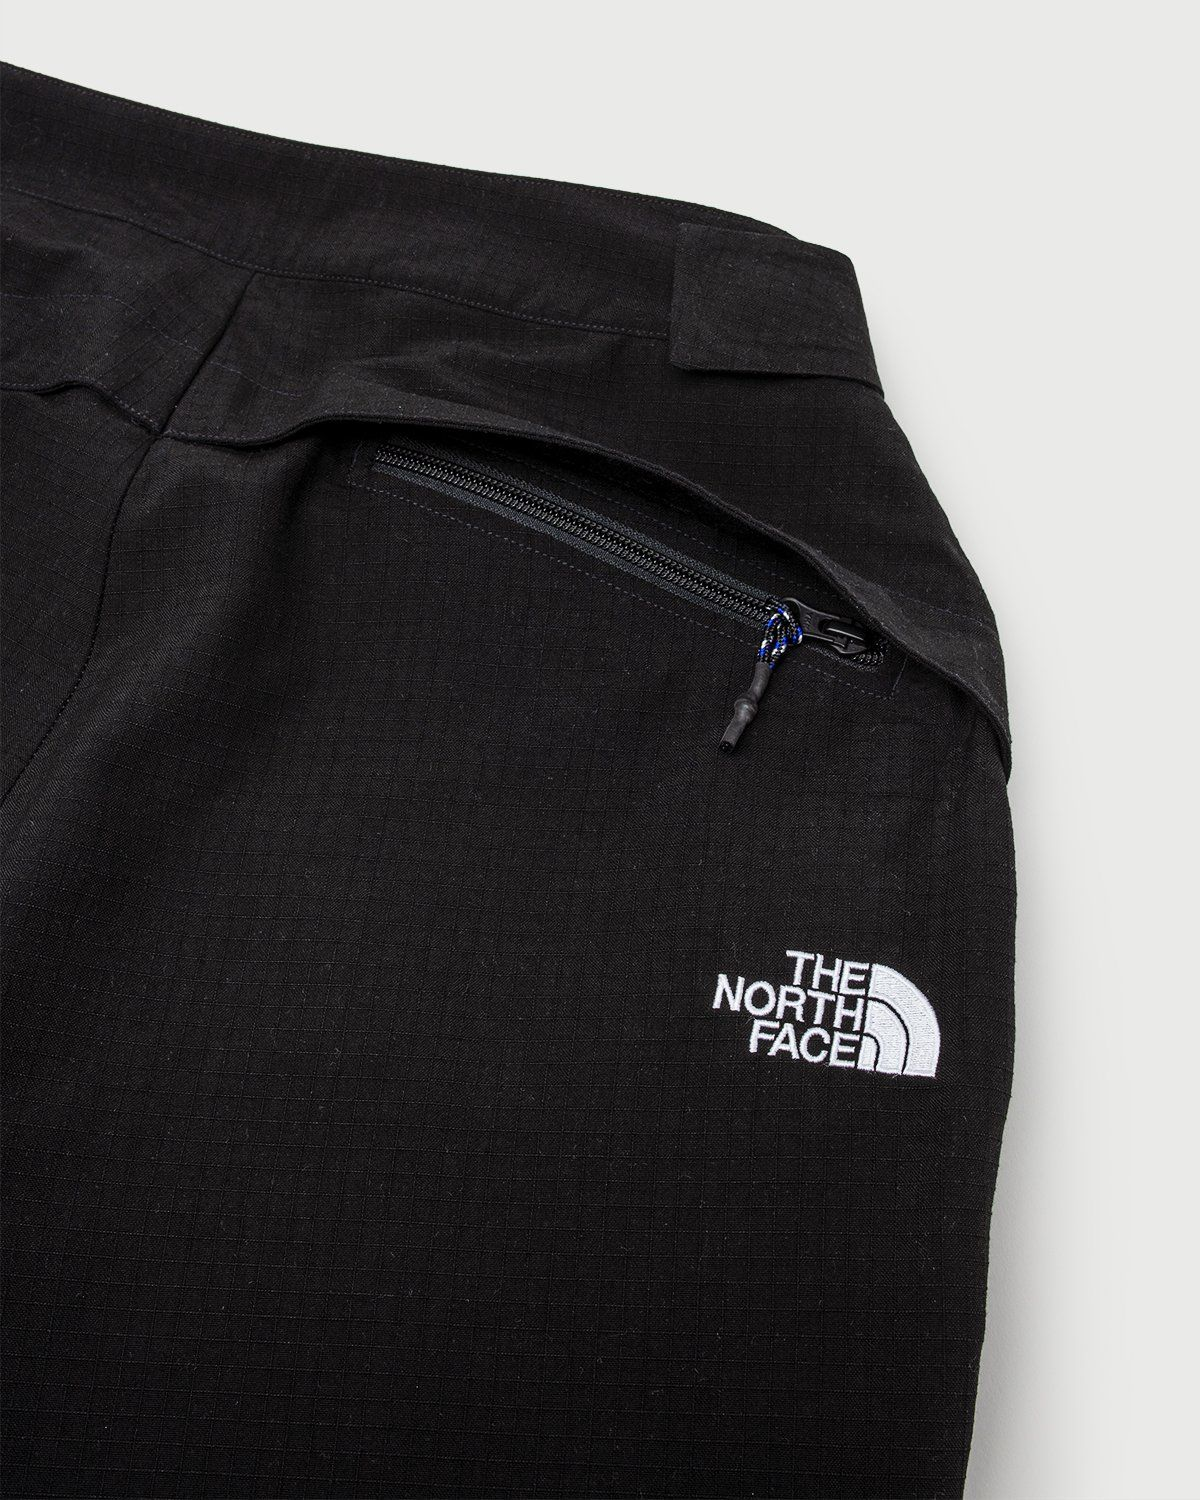 The North Face Black Series — Ripstop Trousers Black - Image 4